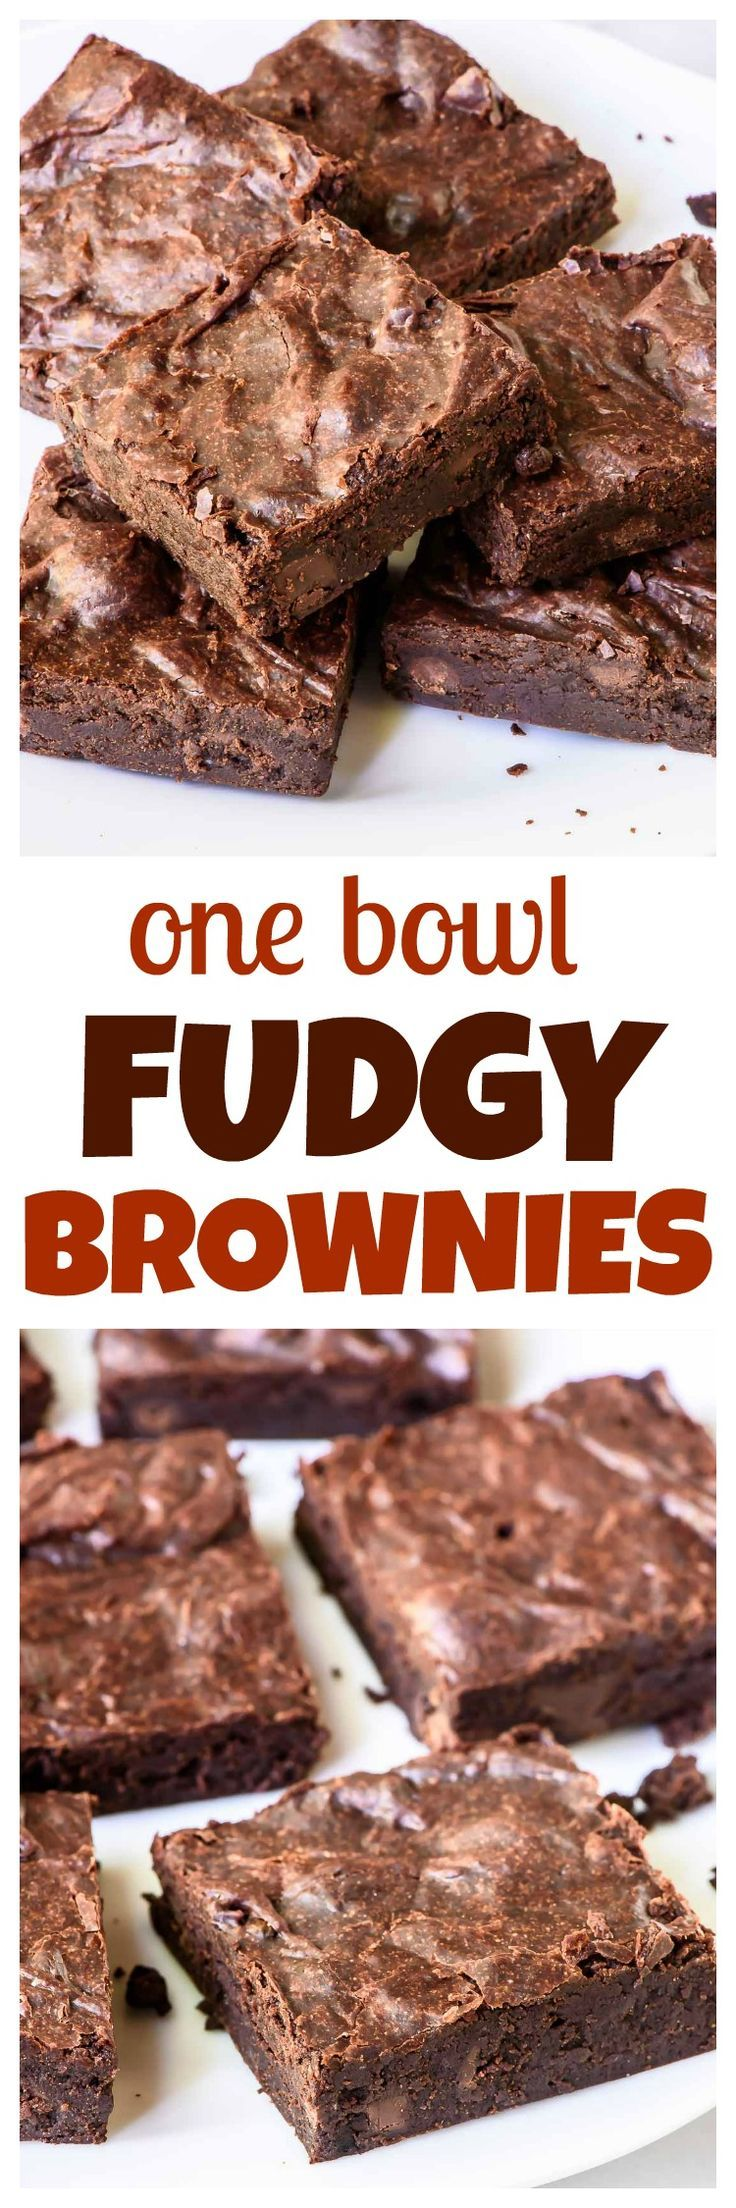 Truly the BEST BROWNIES you will ever bake! Soft, fudgy, and you only need ONE BOWL and 10 MINUTES. What are you waiting for?? www.wellplated.com